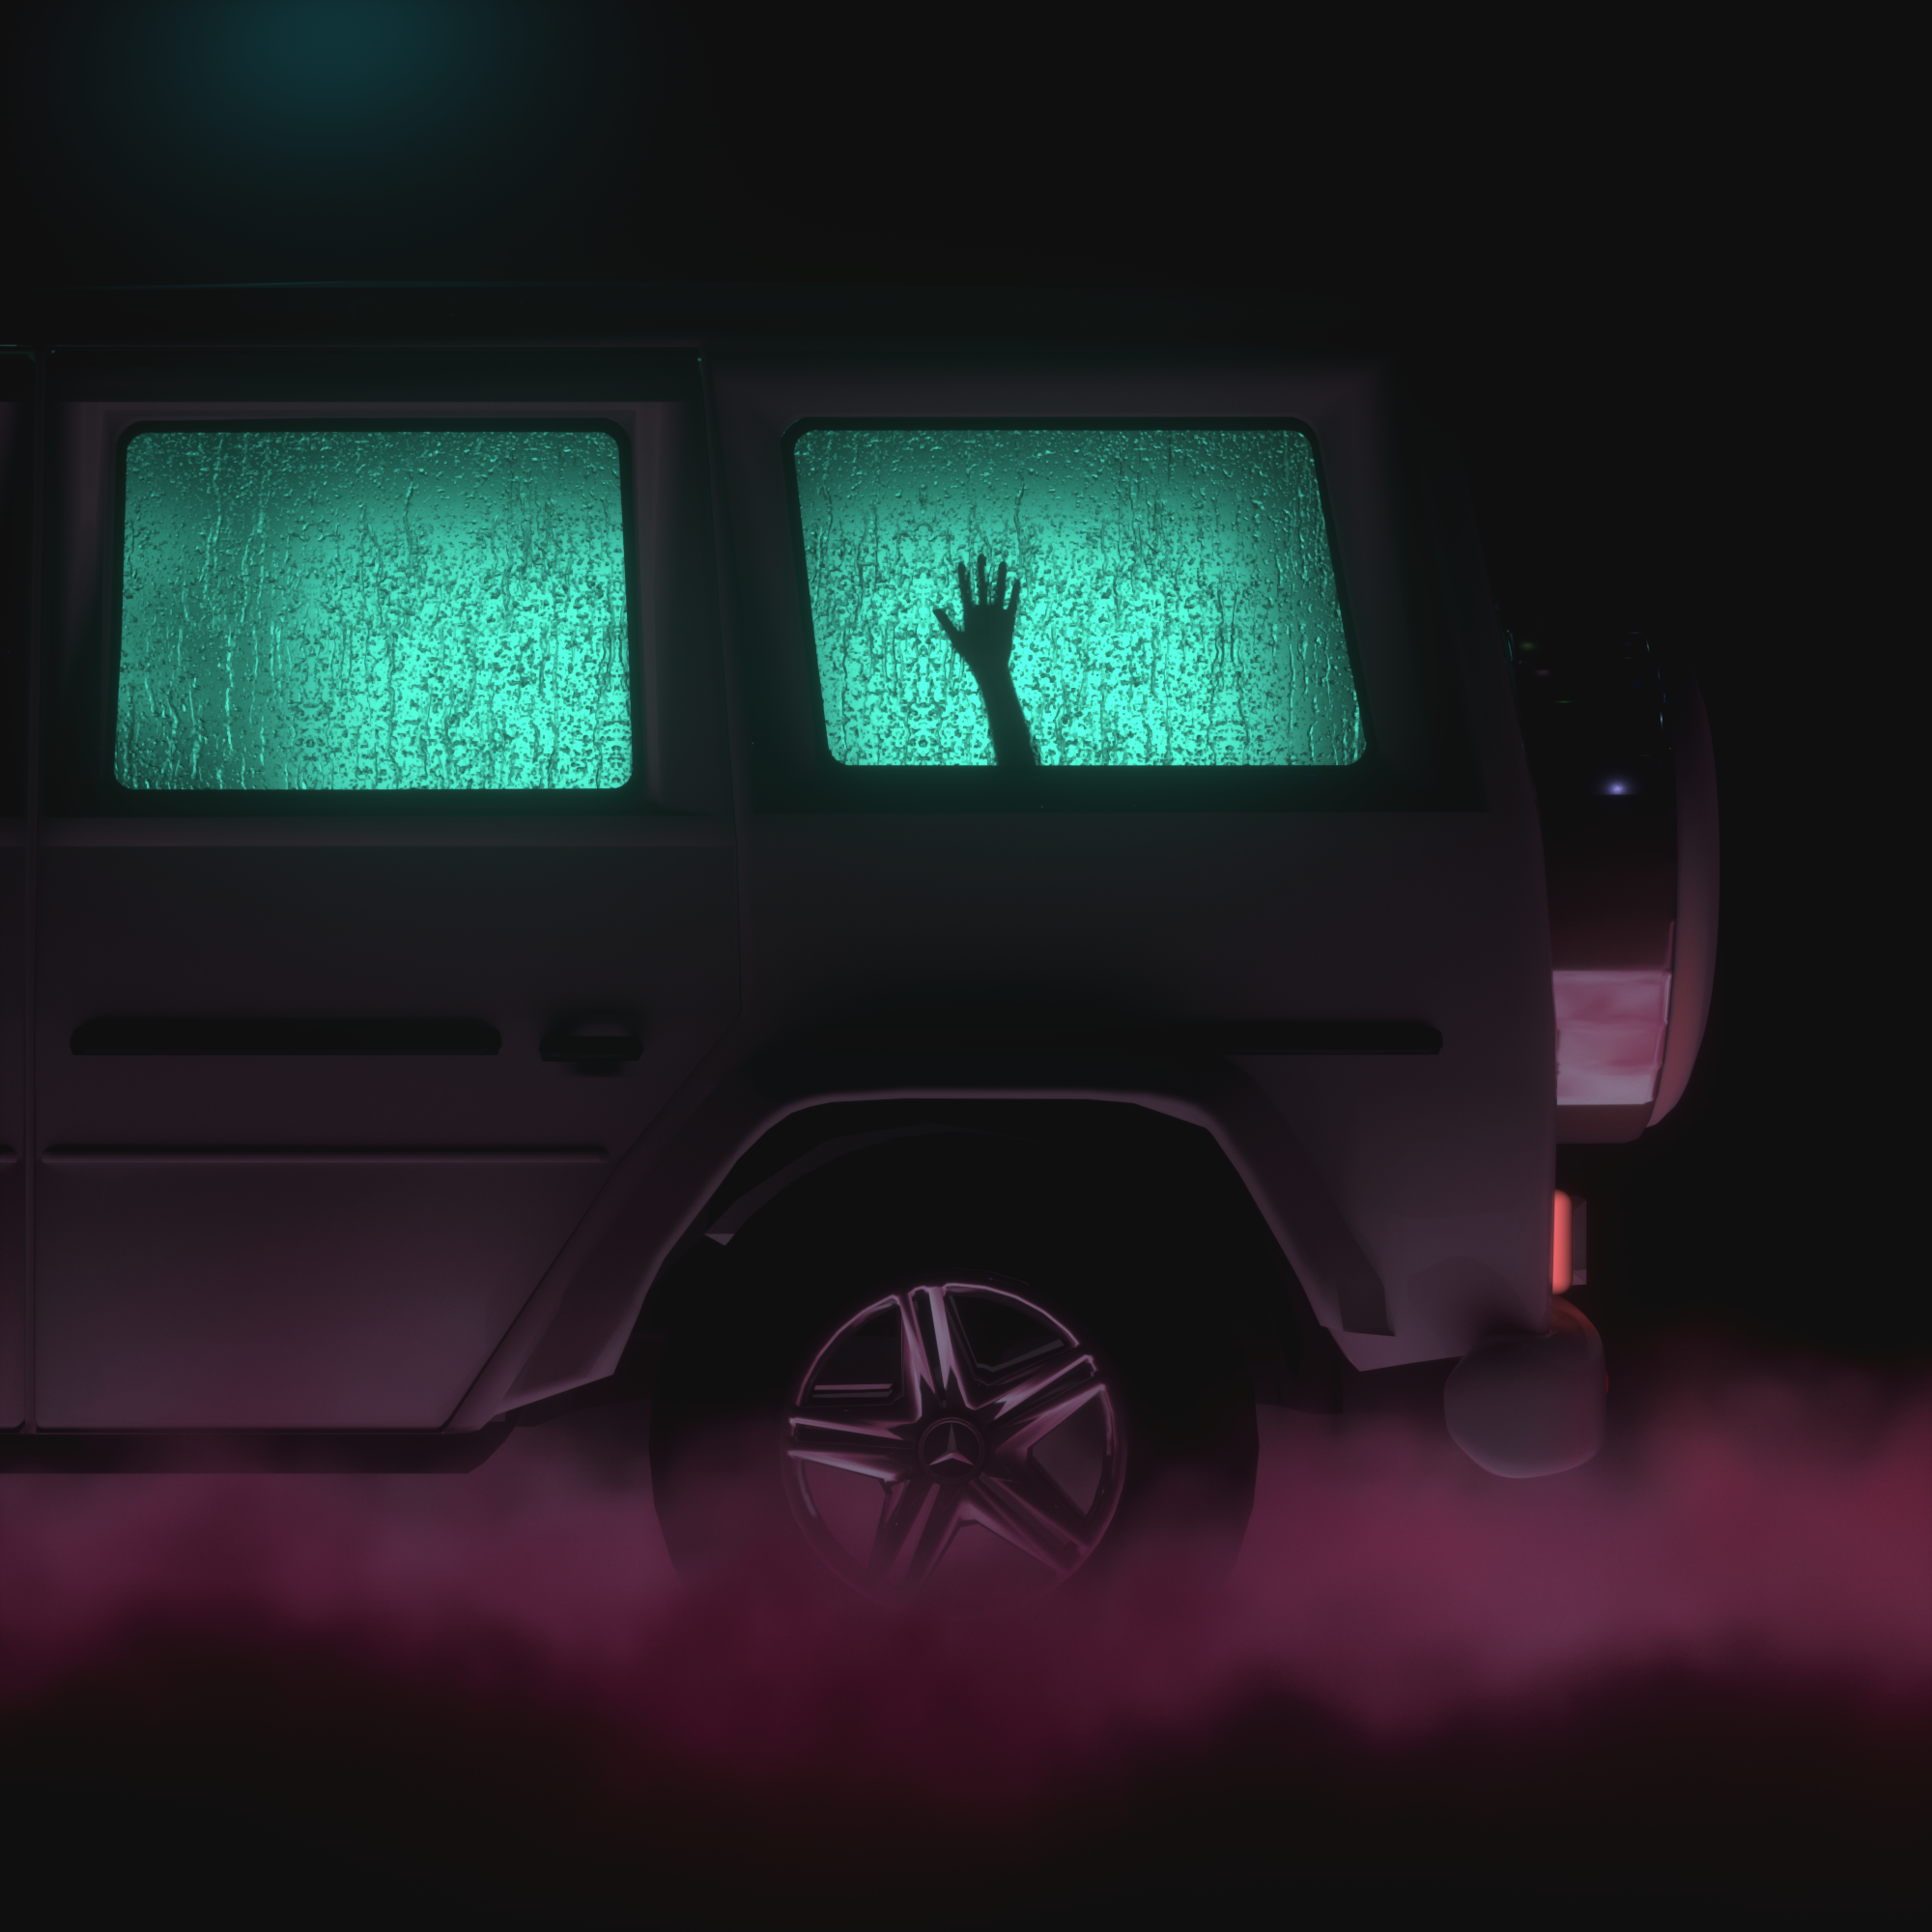 GWagon_v0_edit.png